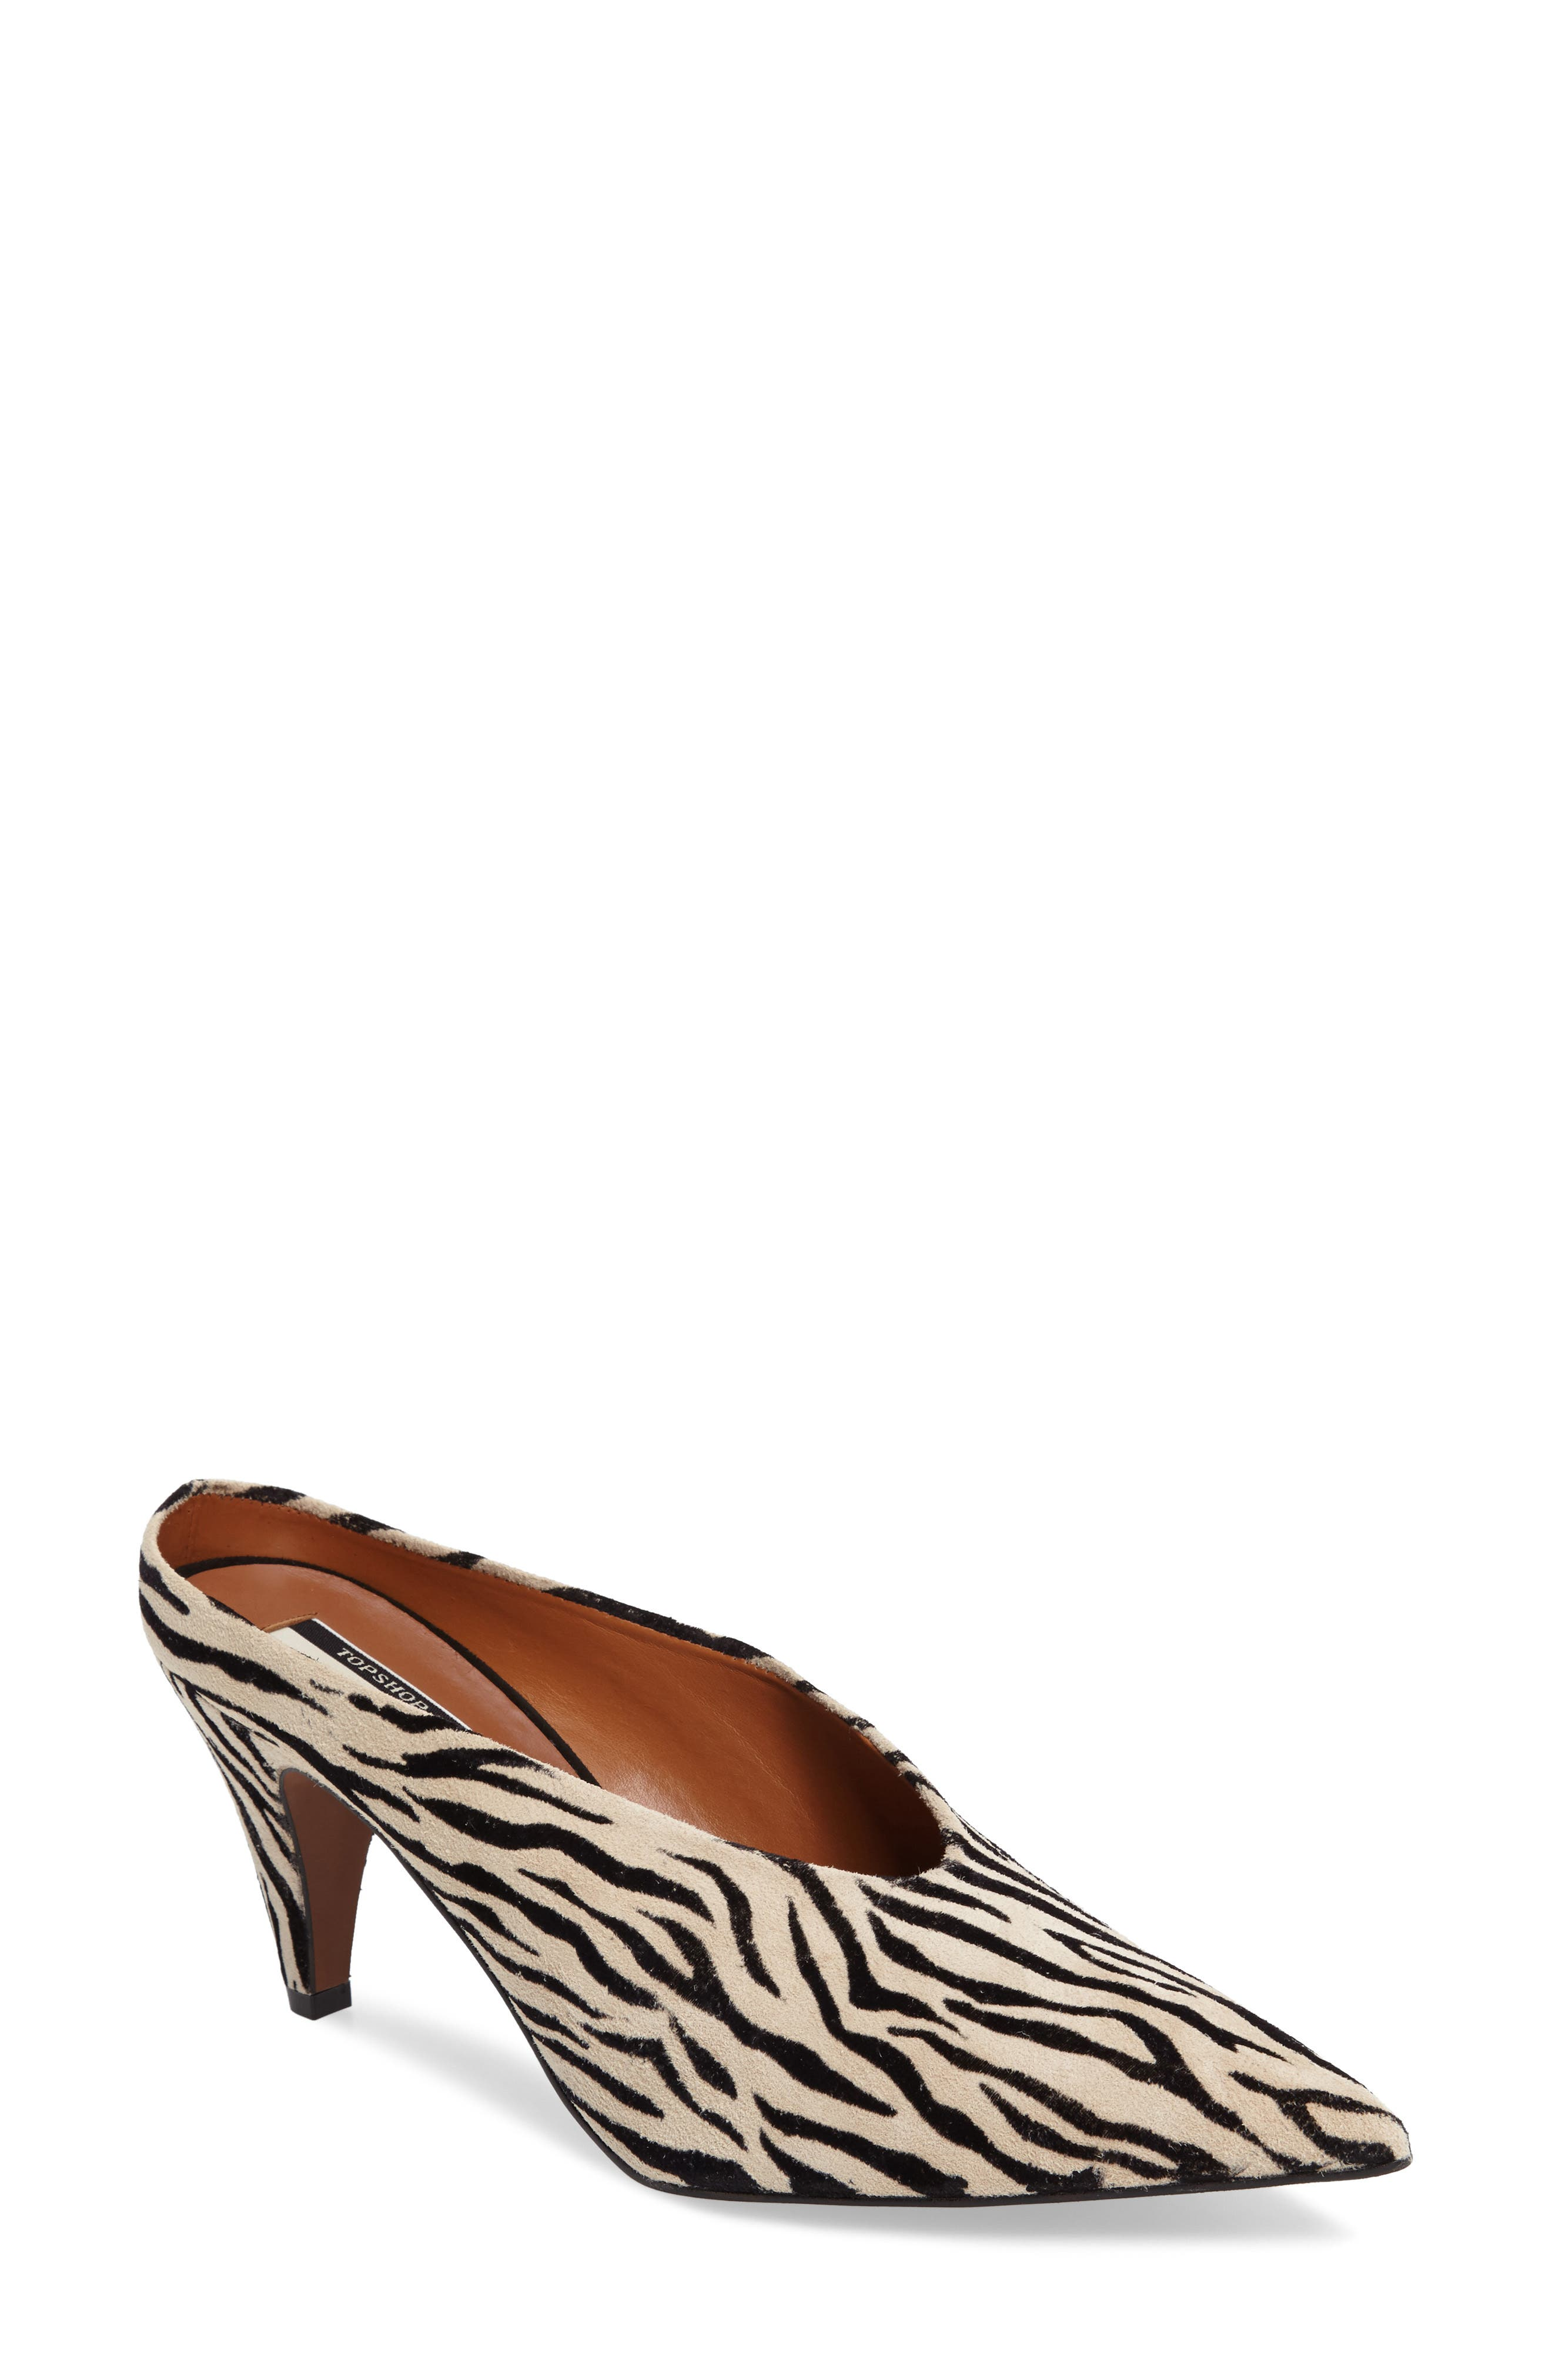 Juicy Pointy Toe Pump,                         Main,                         color, Zebra Print Leather